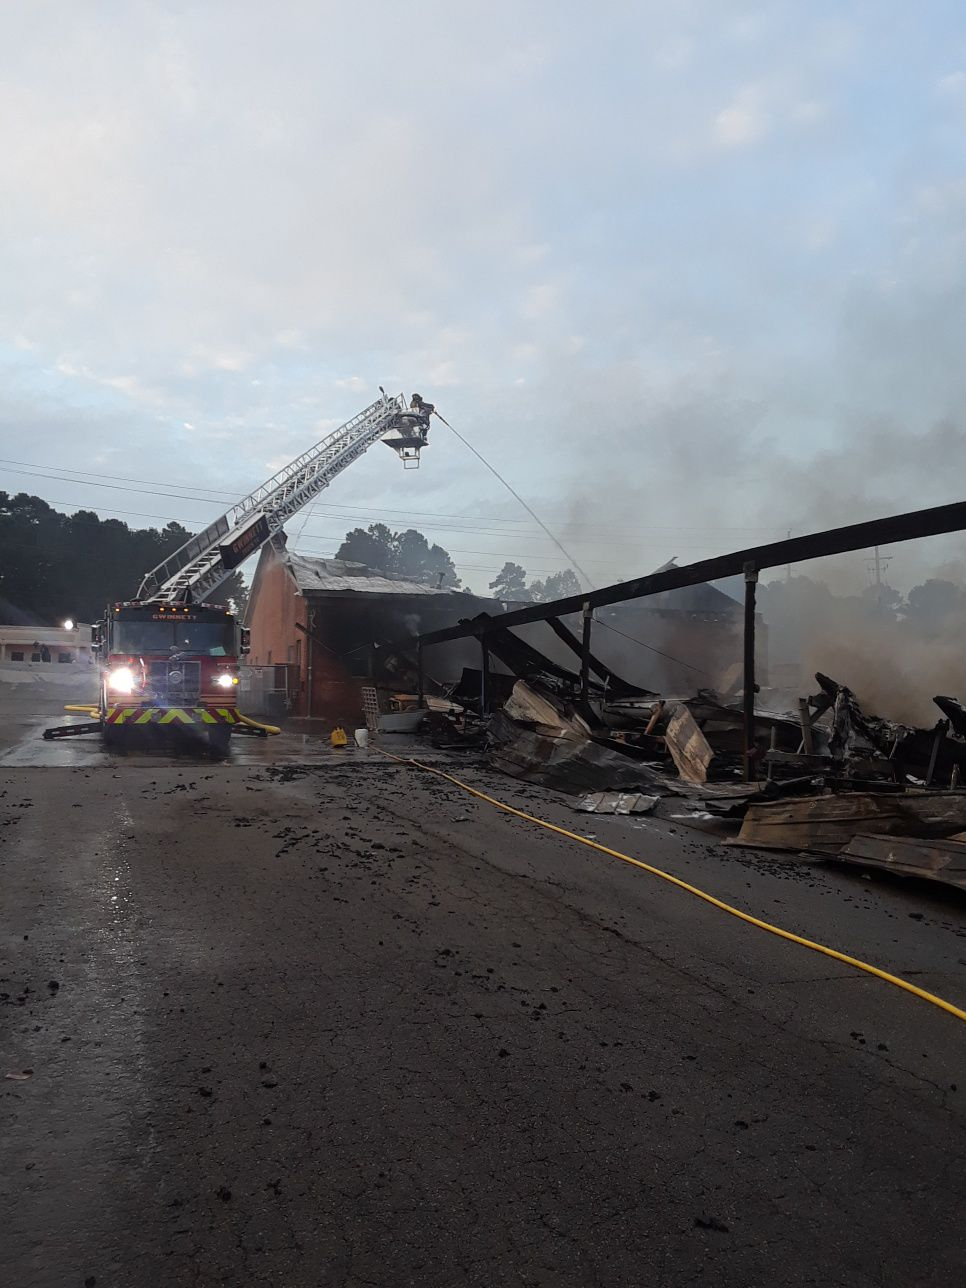 Massive Fire Destroys More Than 80 Boats At Storage